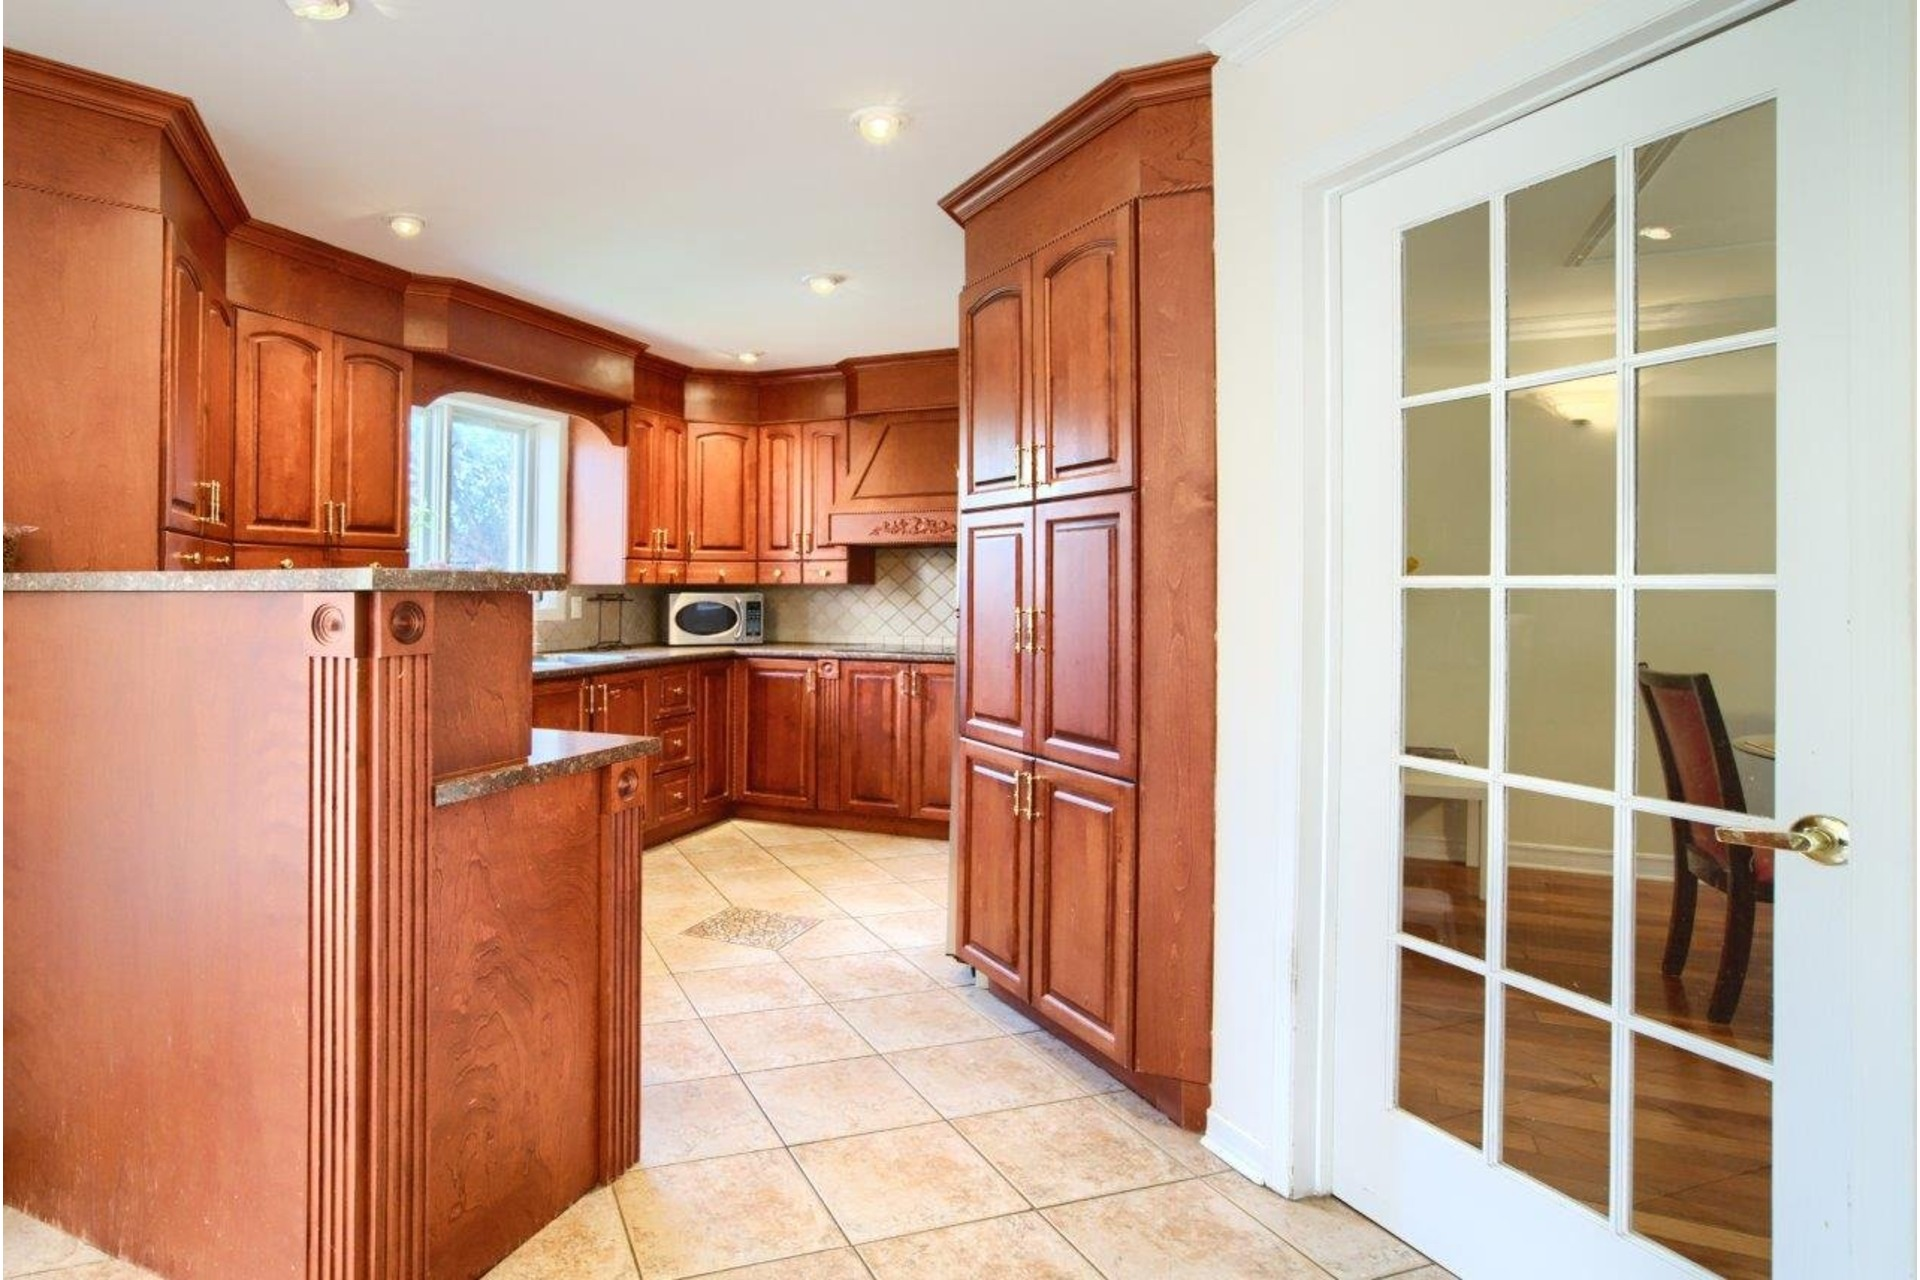 image 6 - House For sale Brossard - 12 rooms